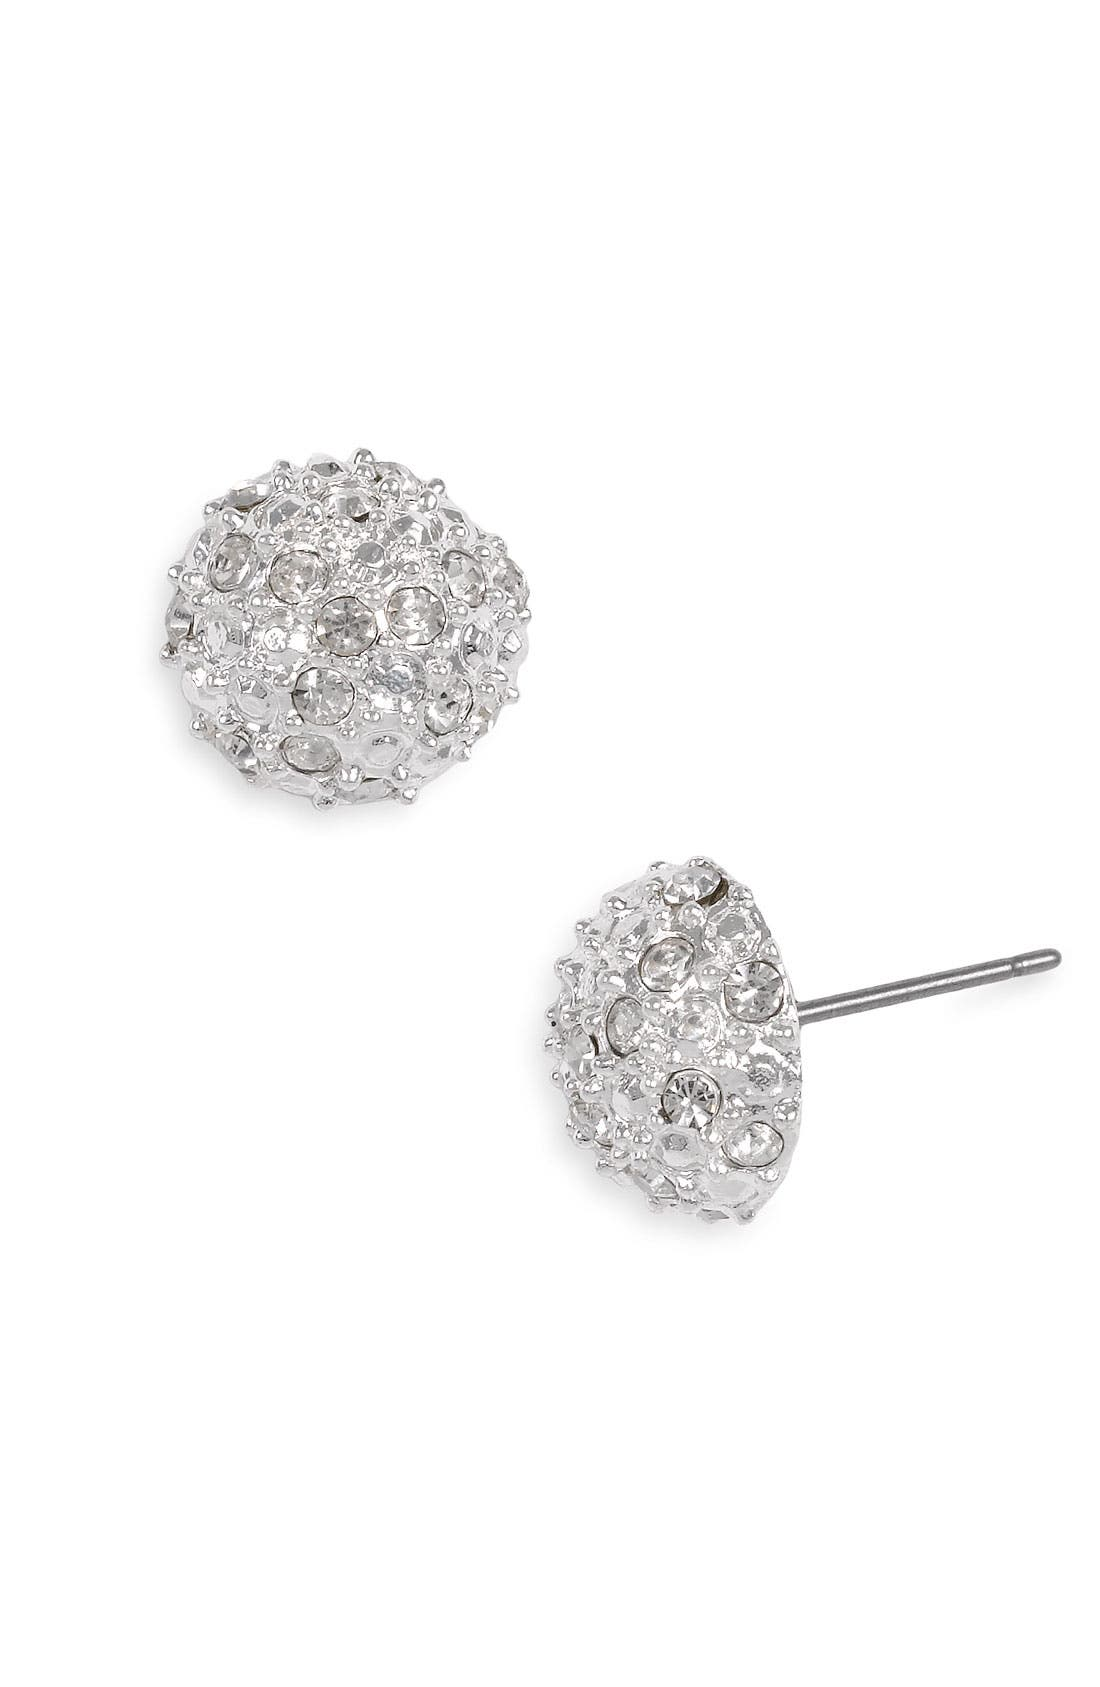 Main Image - Rachel Stone Dome Stud Earrings